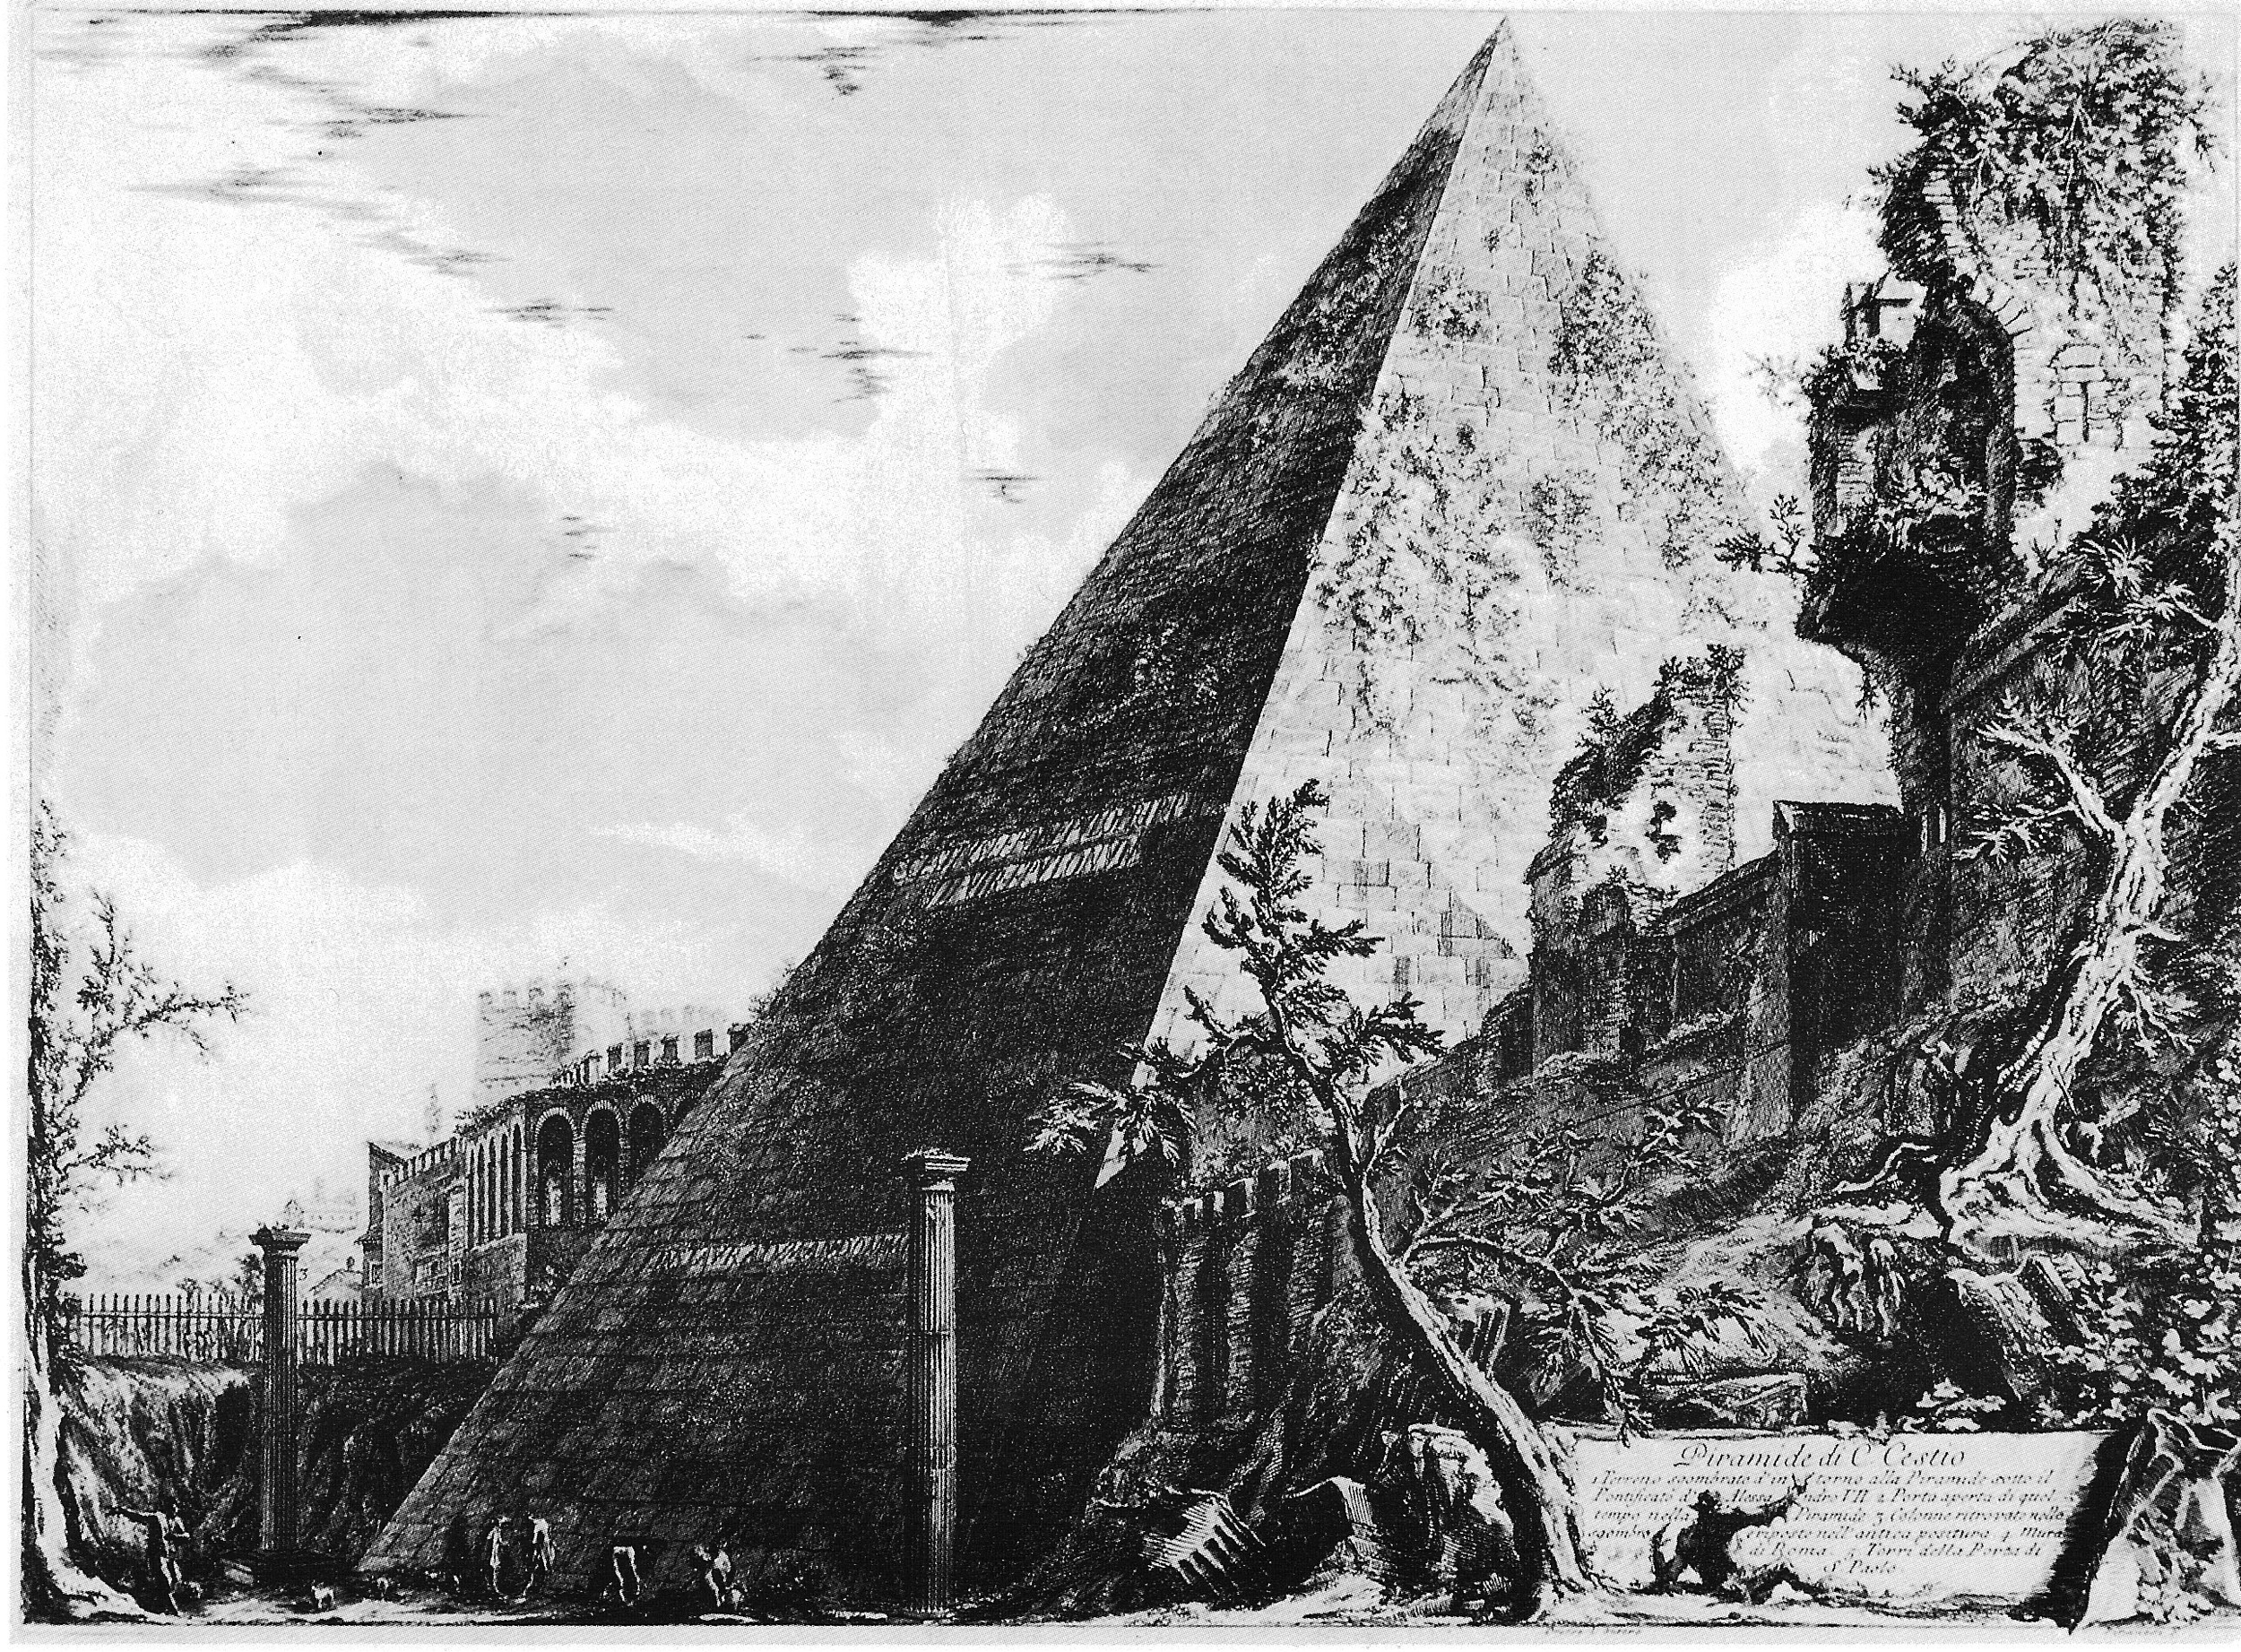 The pyramid was built about 18 BCE–12 BCE as a   tomb   for magistrate Gaius Cestius, etching by Giovanni Battista Piranesi (18th century)